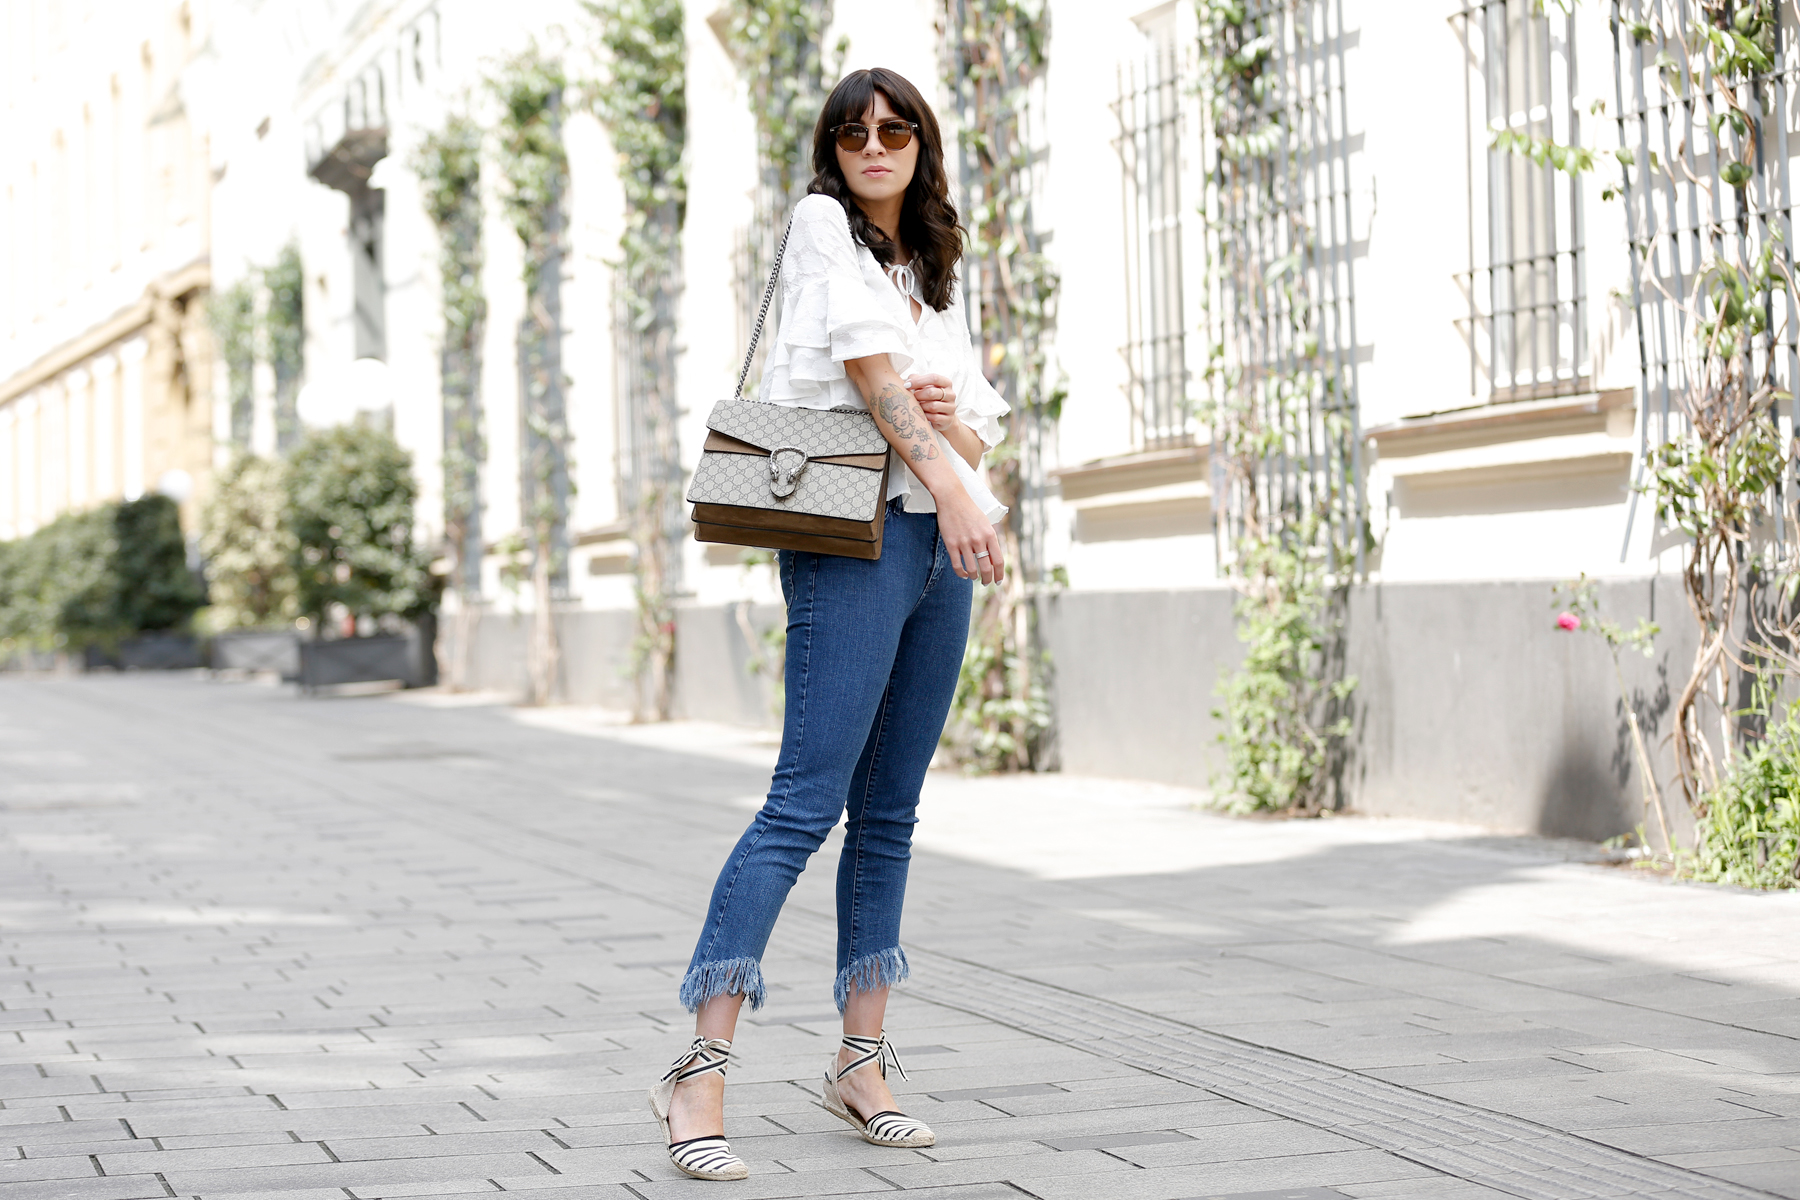 outfit spring summer minimal blue white clean bangs brunette girl cute french parisienne mango fringe jeans denim white blouse shopbop soludos espadrilles gucci dionysus bag luxury fashion modeblog germany ricarda schernus fashionblogger 2